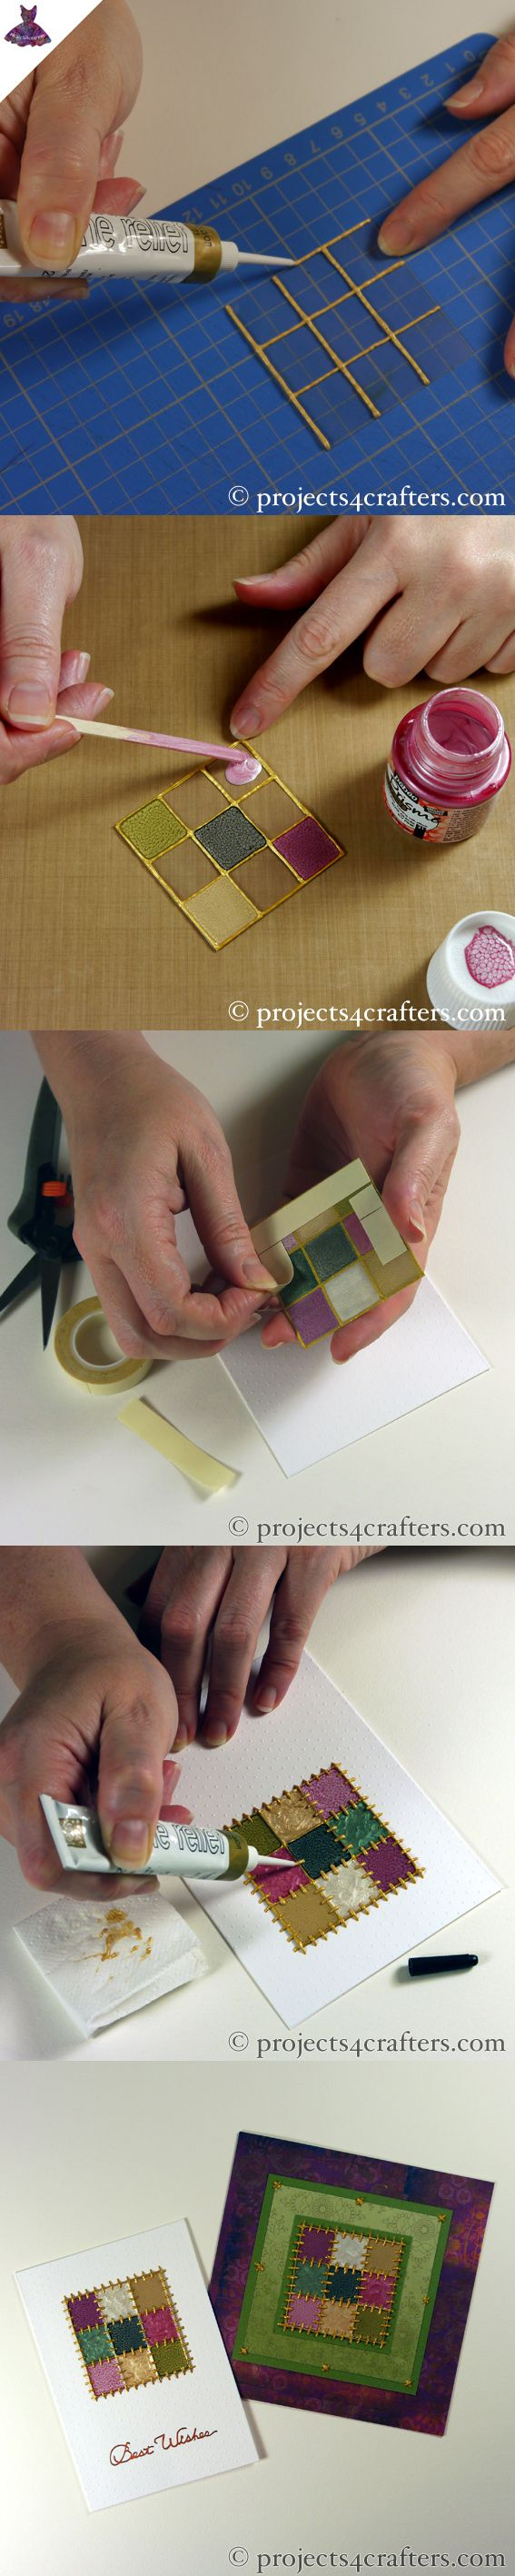 Draw a grid on an acetate square with Cerne Relief & leave to dry. Then fill in the areas with Fantasy Prisme & Moon Paints & leave to dry. Use double-sided tape to stick the acetate to the card before creating 'stitches' with more Cerne Relief. Leave to thoroughly dry.